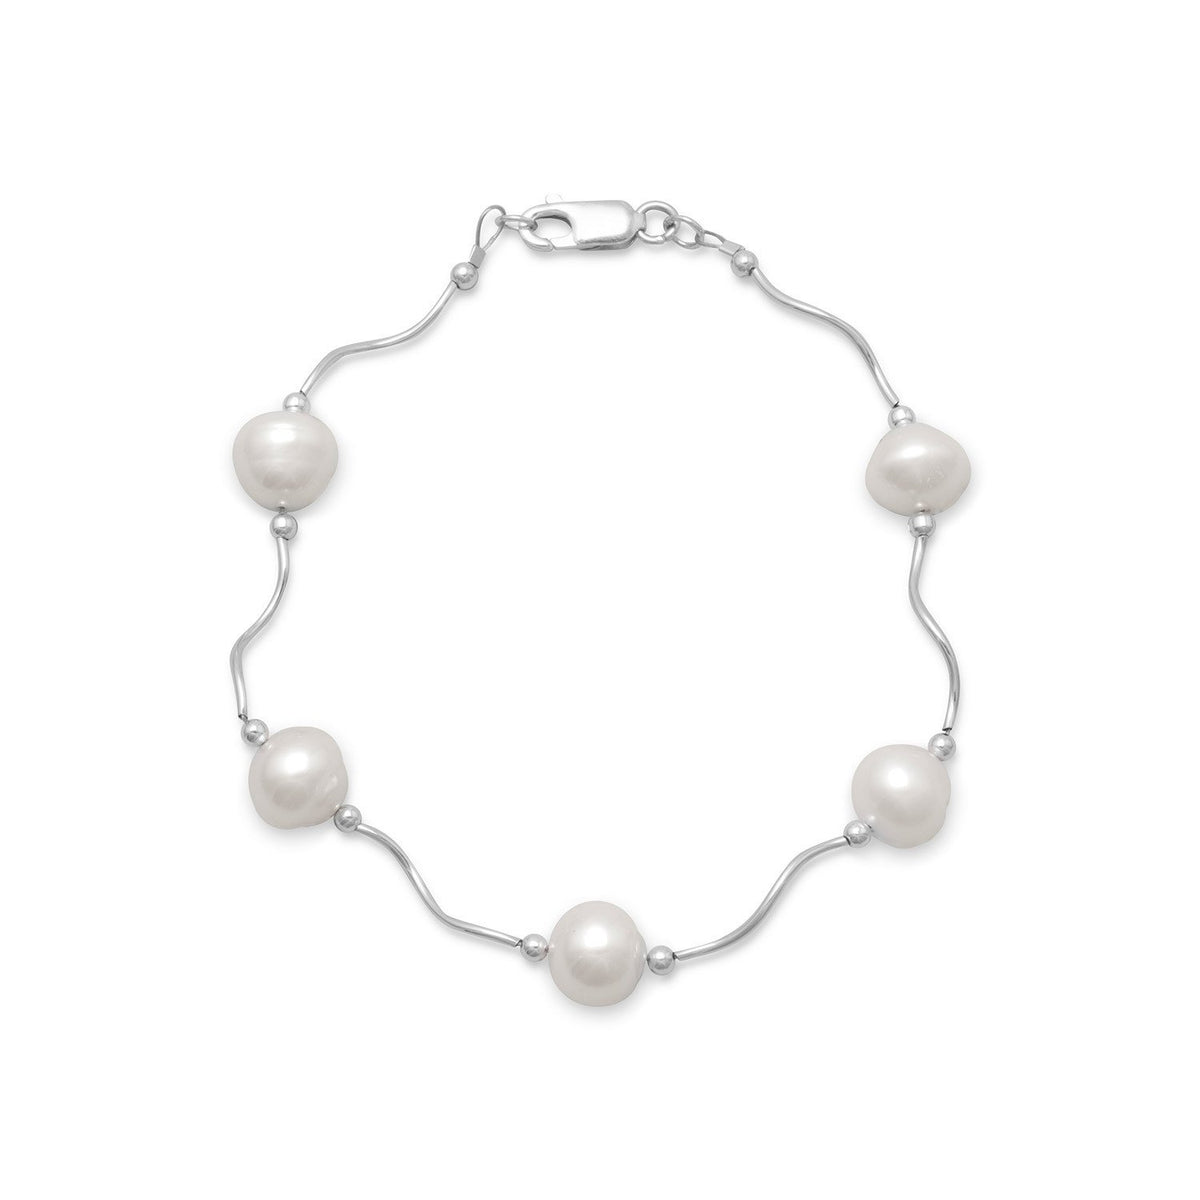 "8"" Wave Design Bracelet with Cultured Freshwater Pearls"